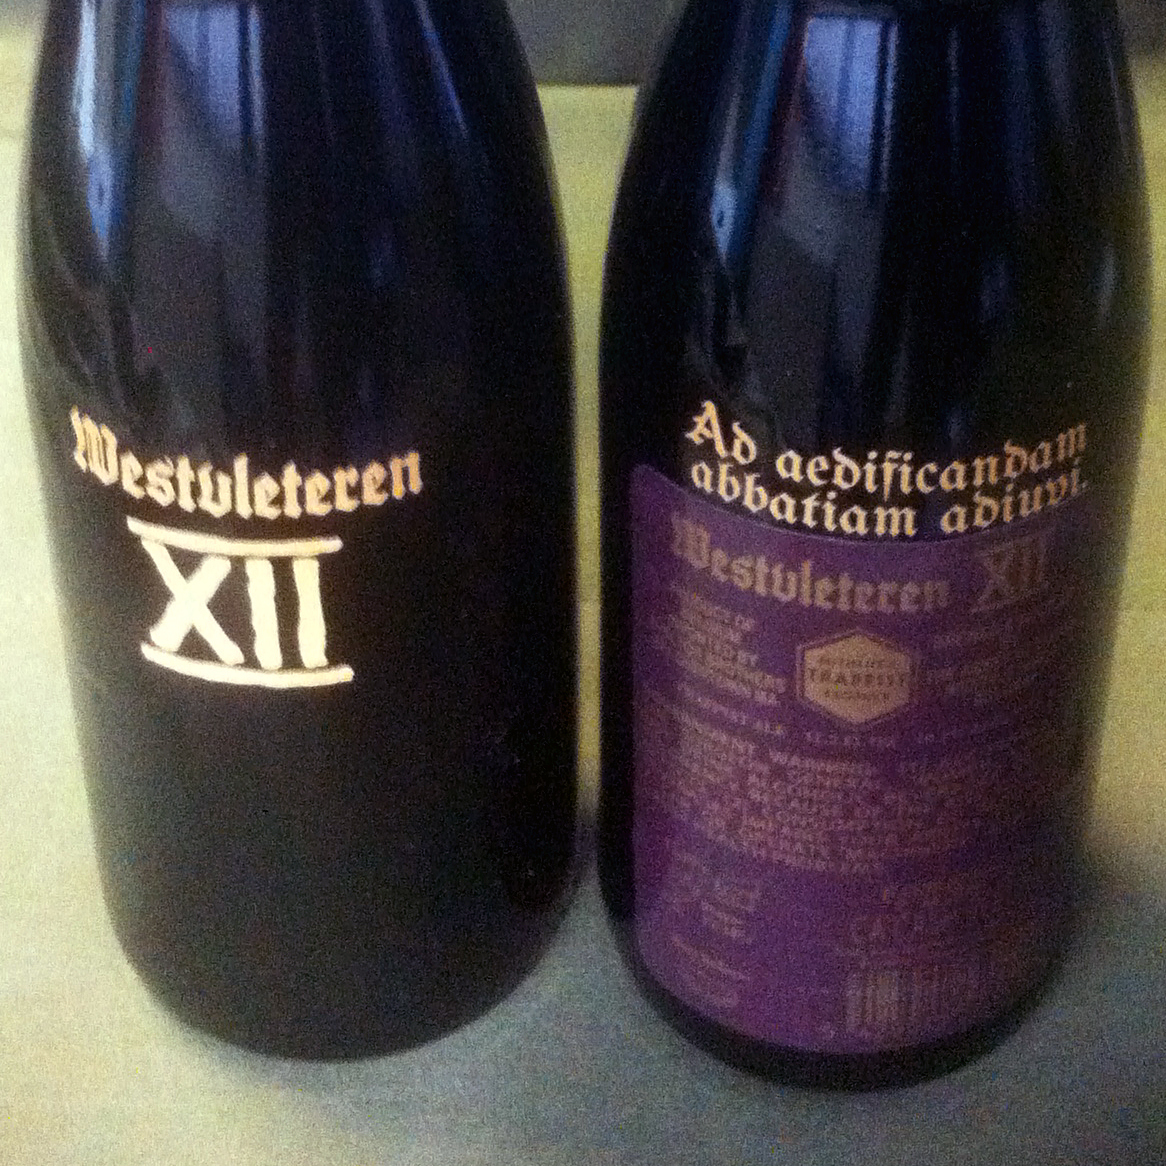 "For the first time, the vaunted Westvleteren 12 beer has hit U.S. beer store shelves in large numbers. The bottle's Latin inscription reads, ""Ad aedificandam abbatiam adiuvi,"" or, ""I helped to build the abbey."""